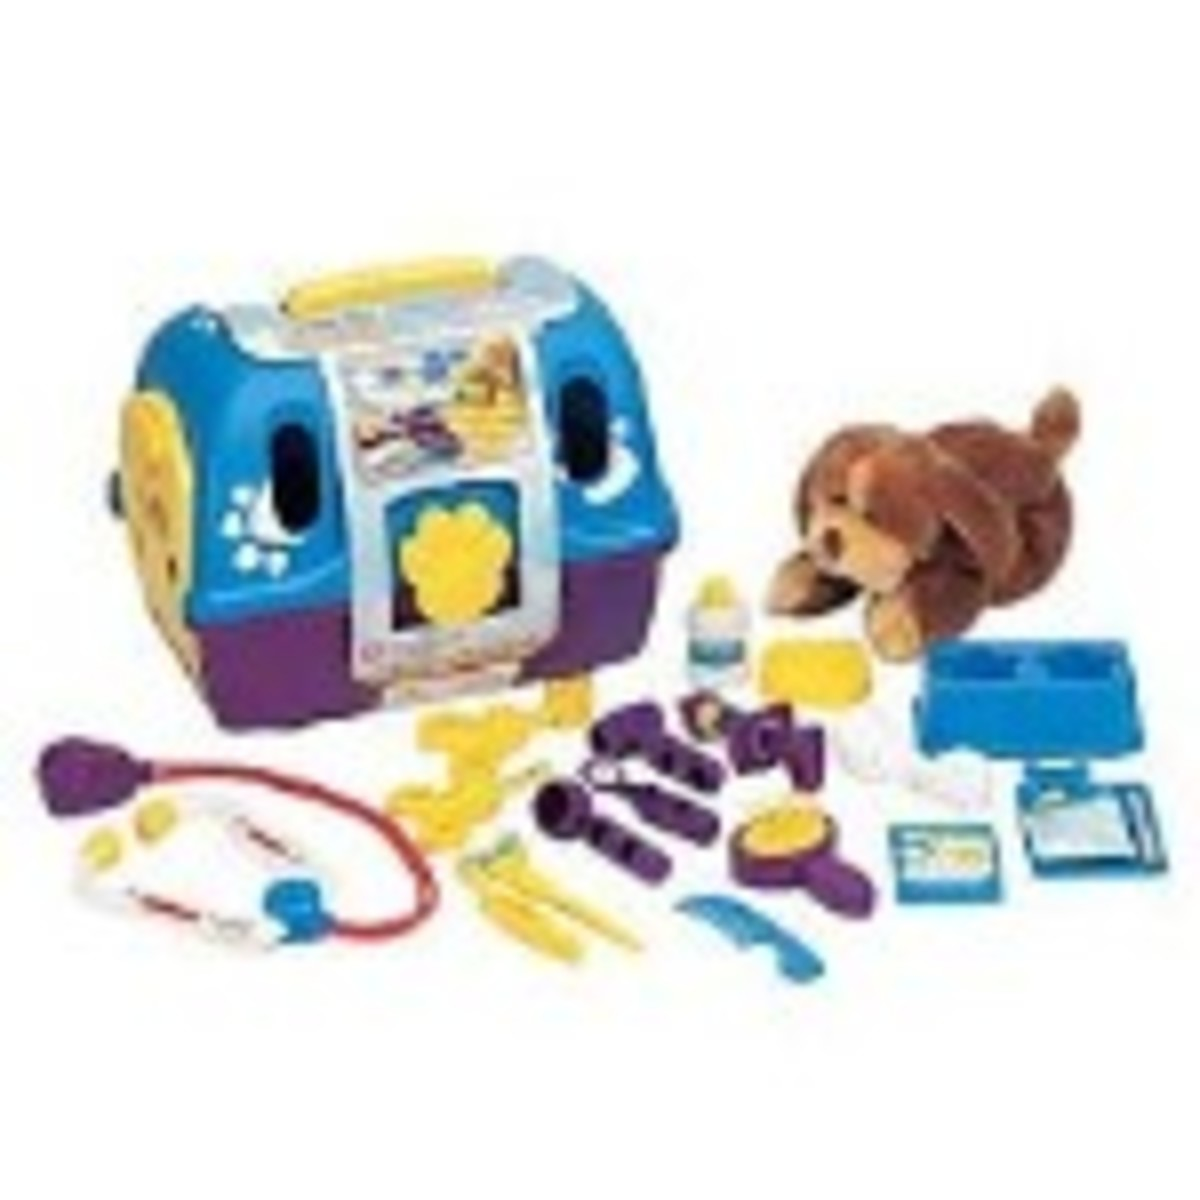 Veterinarian Toys & Playsets for Kids - Vet Toys for Kids